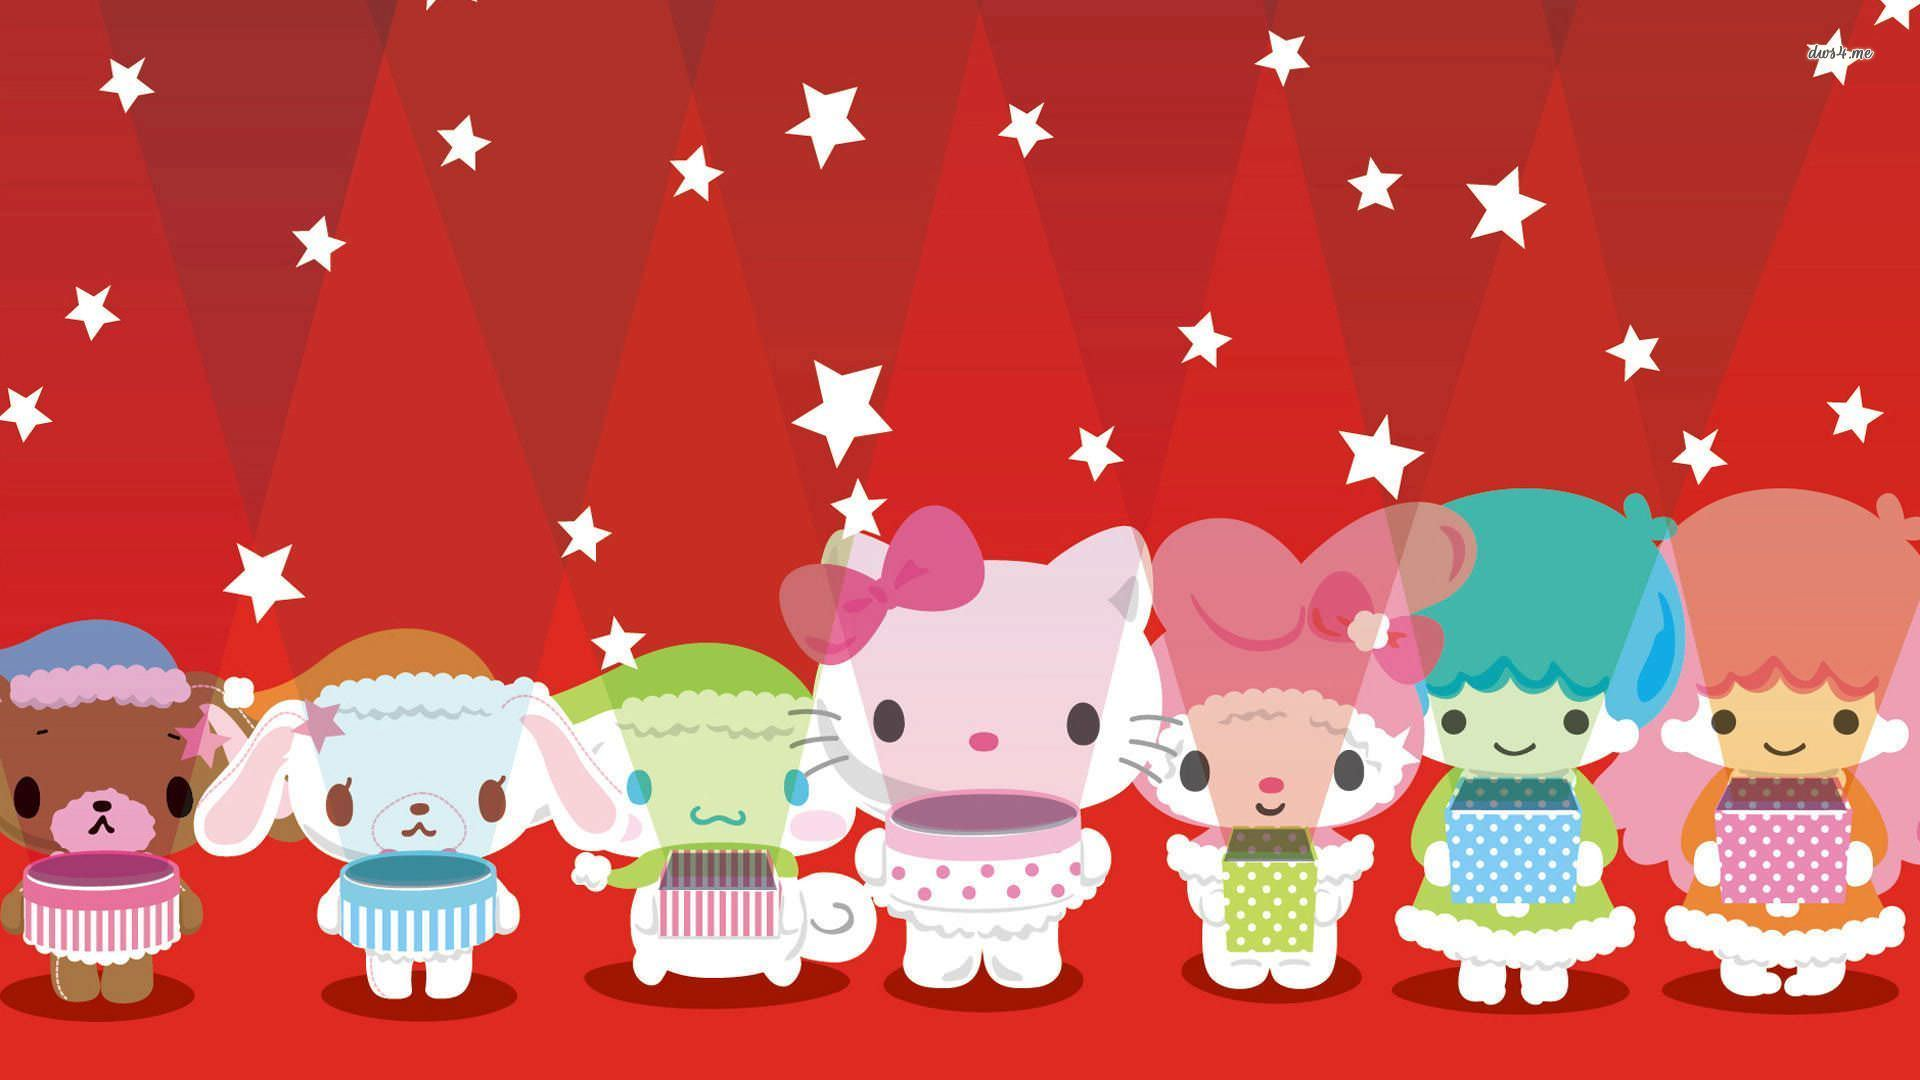 Simple Wallpaper Hello Kitty Friend - Stars-with-Hello-Kittes-Wallpaper  Pic_92669.jpg